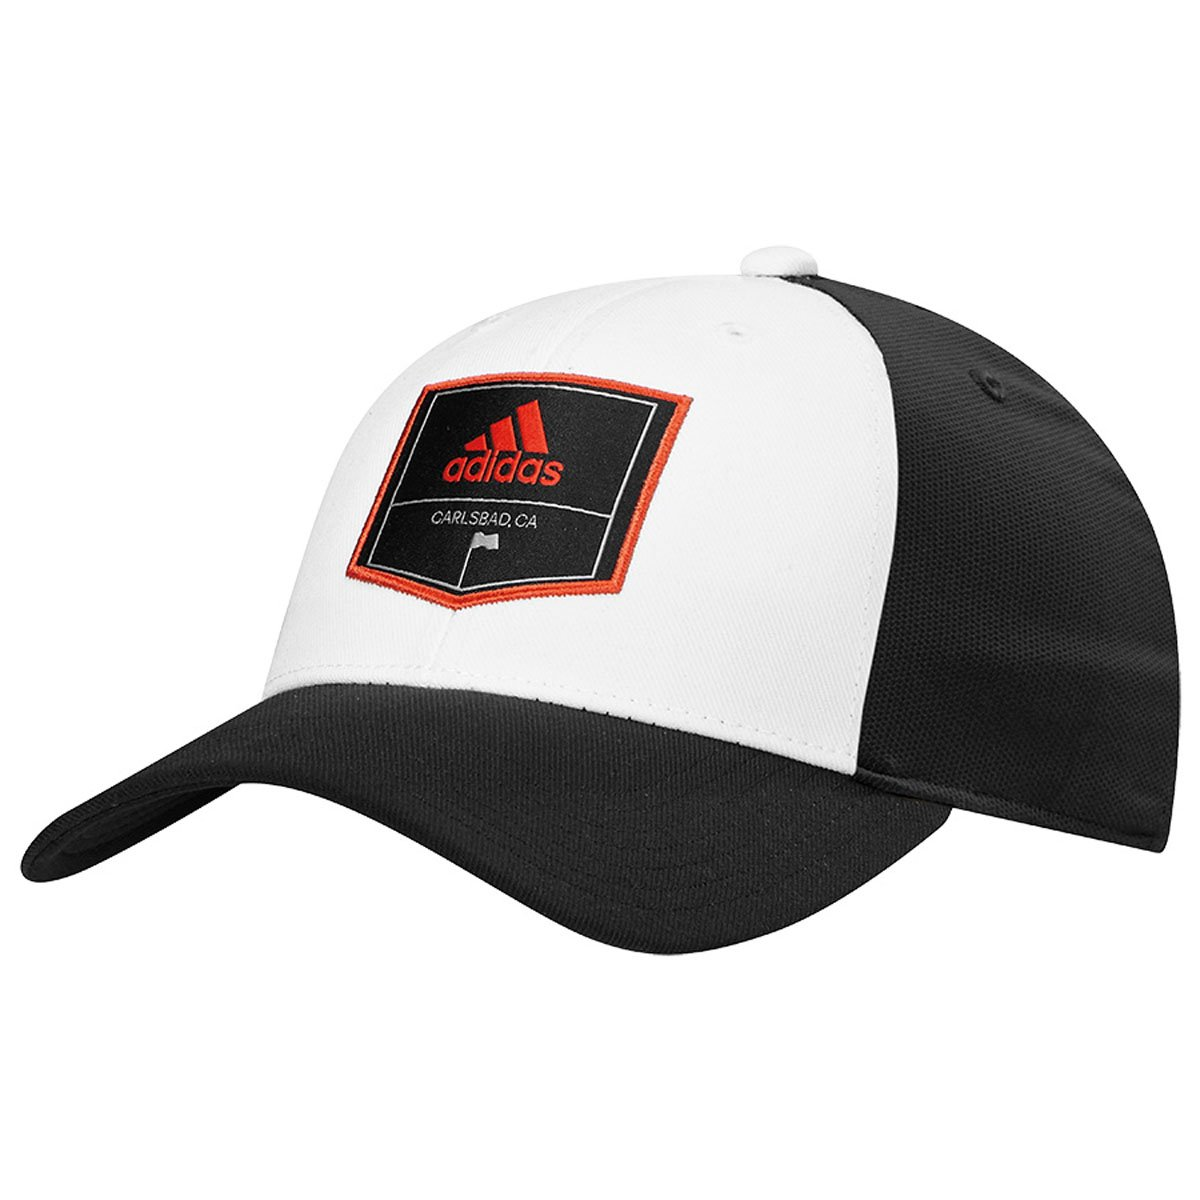 af961d2fe84 Amazon.com  adidas Golf Patch Trucker Hat  Sports   Outdoors